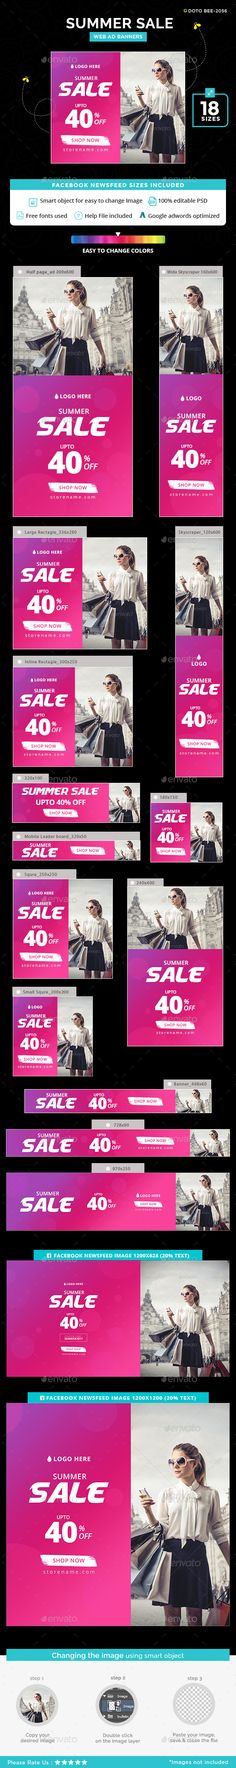 #Summer #Sale #Banner #template - #Banners & #Ads #Web #Elements #Design. Download here: https://graphicriver.net/item/summer-sale-banners/20045440?ref=yinkira